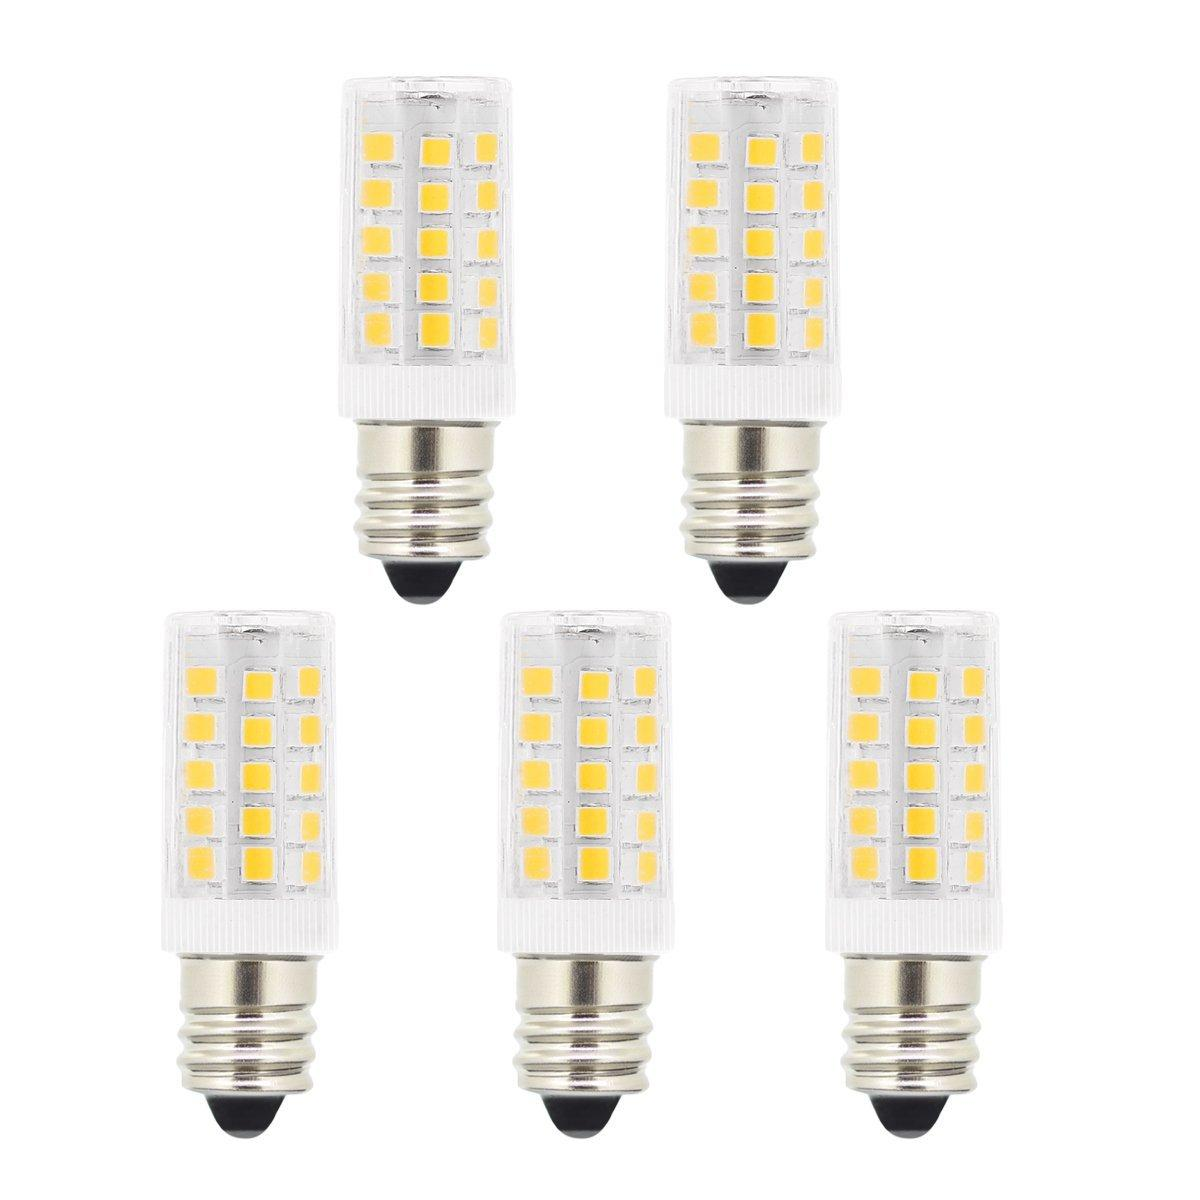 5w T3 E12 Candelabra Base Led Bulbs 40 Watt Incandescent Bulb Replacement 120 Volts 400lm Natural Daylight White 6000k Led Light Bulbs For U Led Car